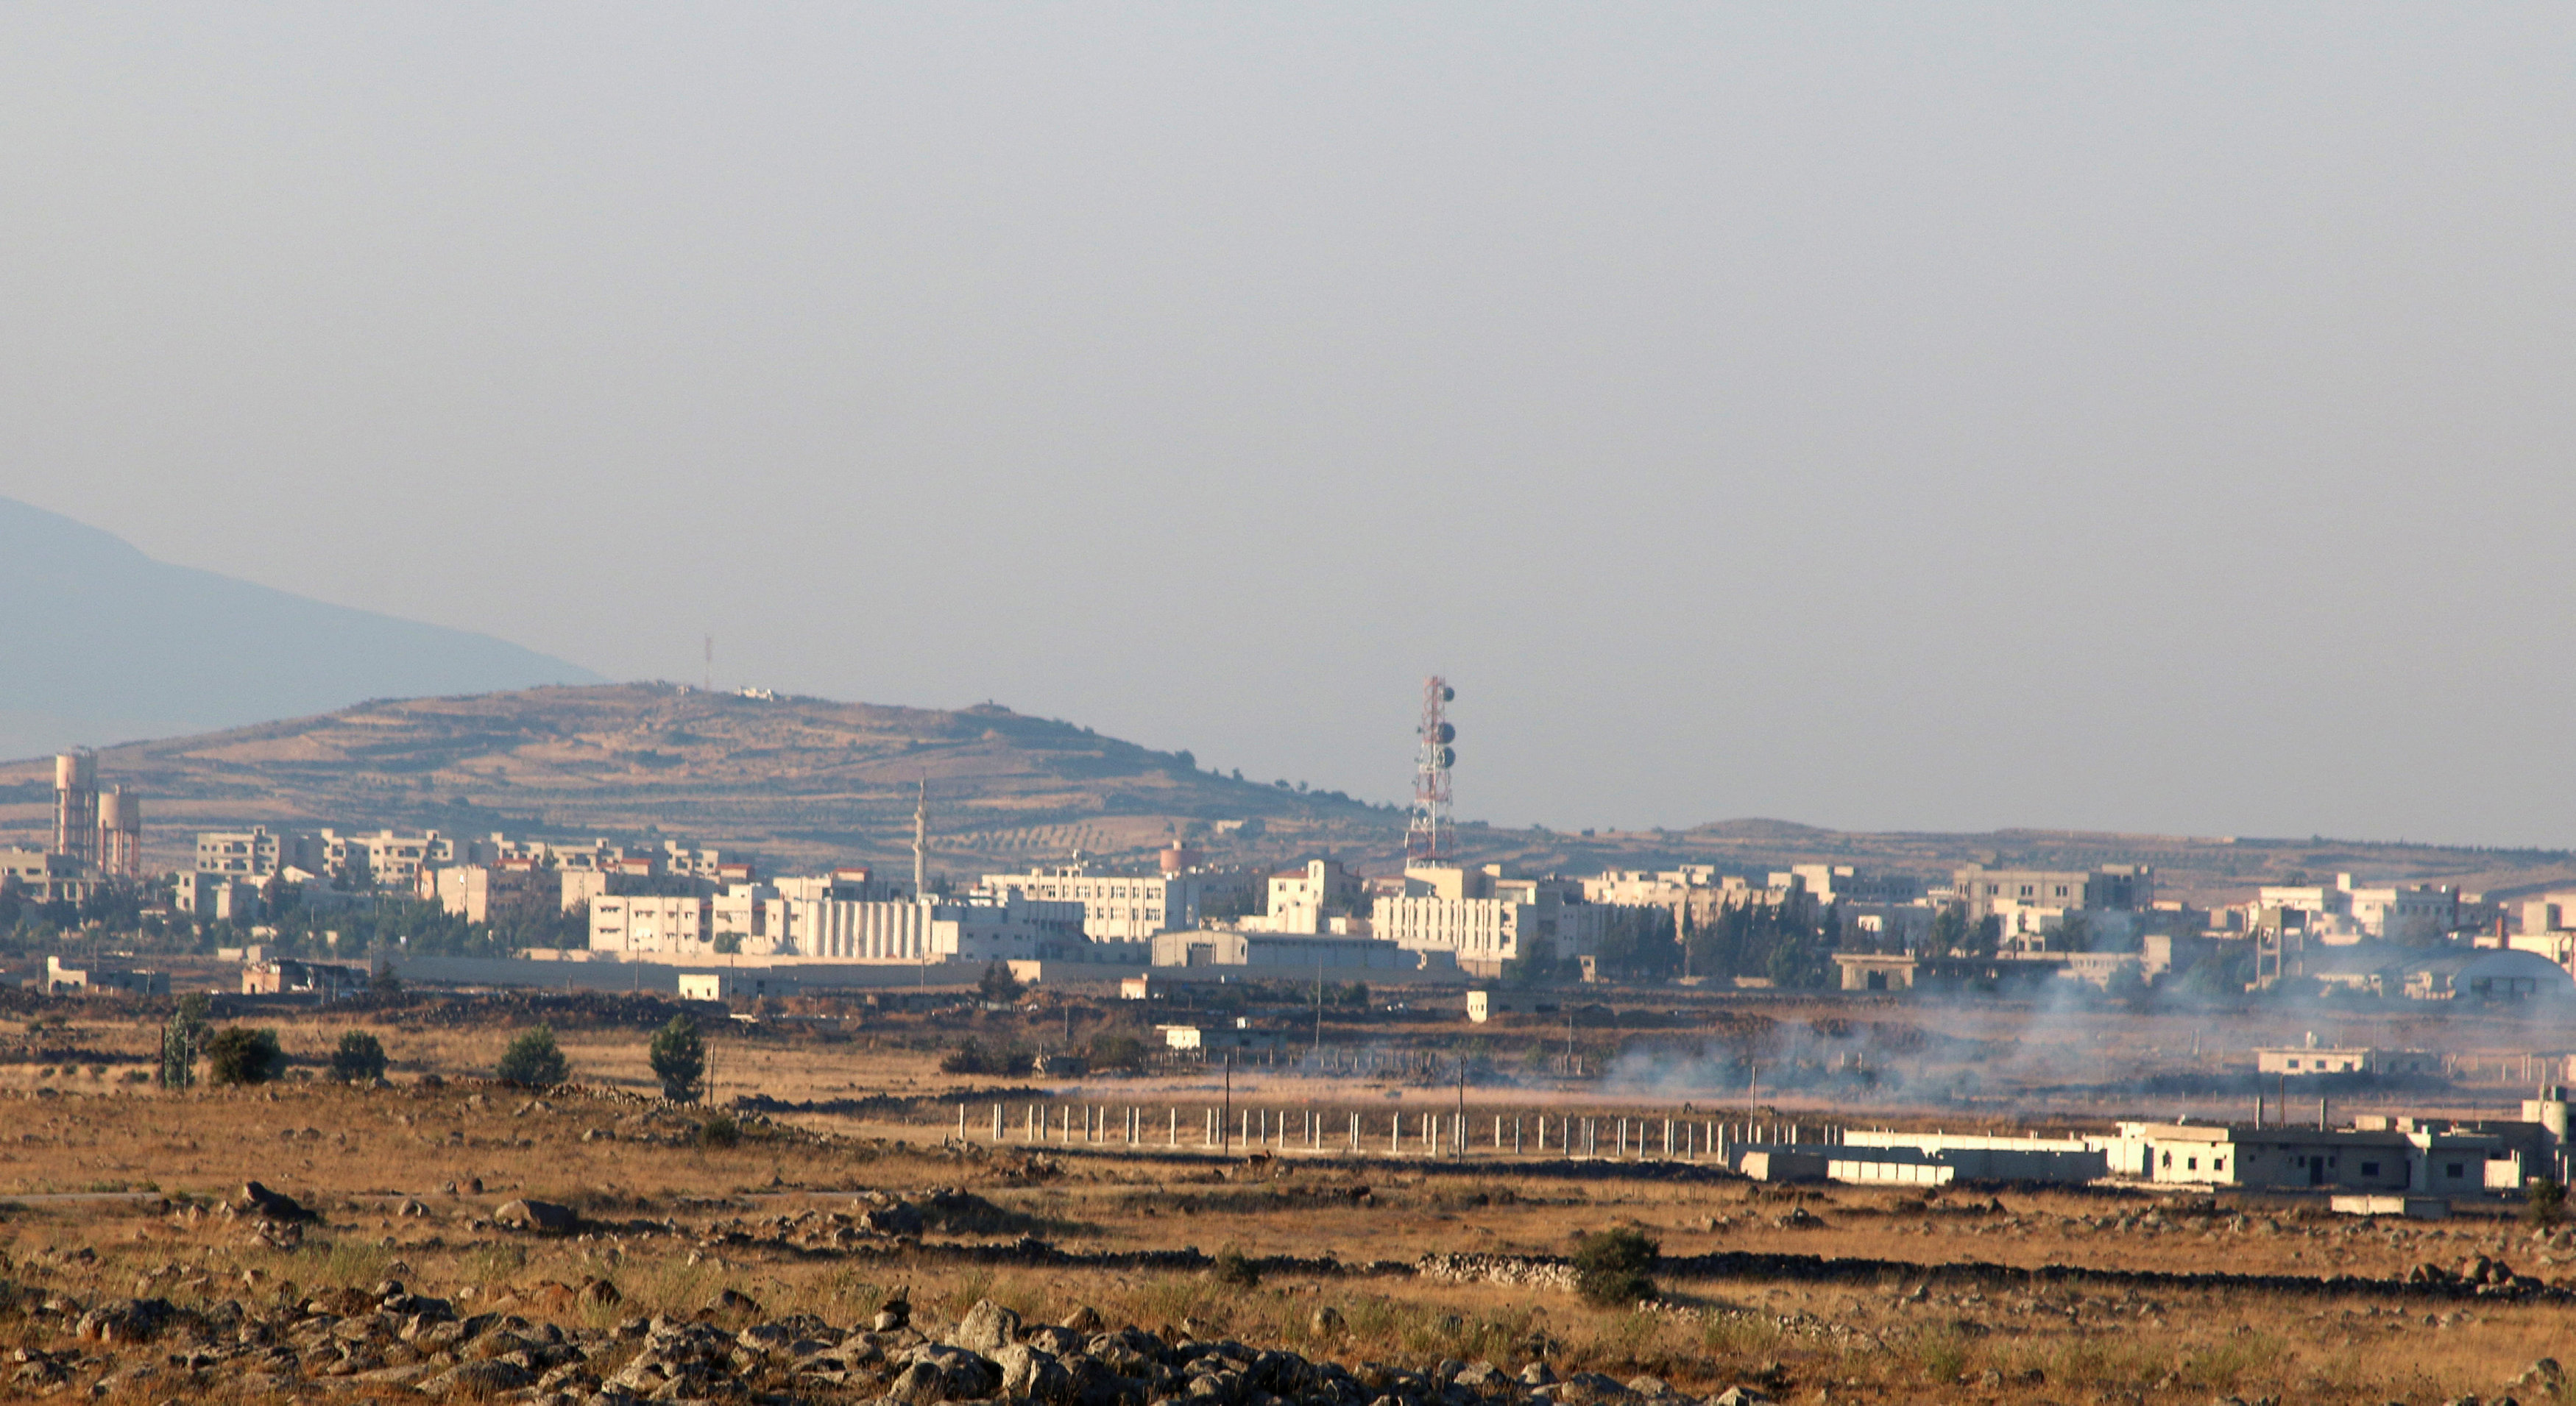 A general view shows Baath city, bordering the Israeli-occupied Golan Heights, Syria on June 24, 2017. (REUTERS/Alaa Al-Faqir)